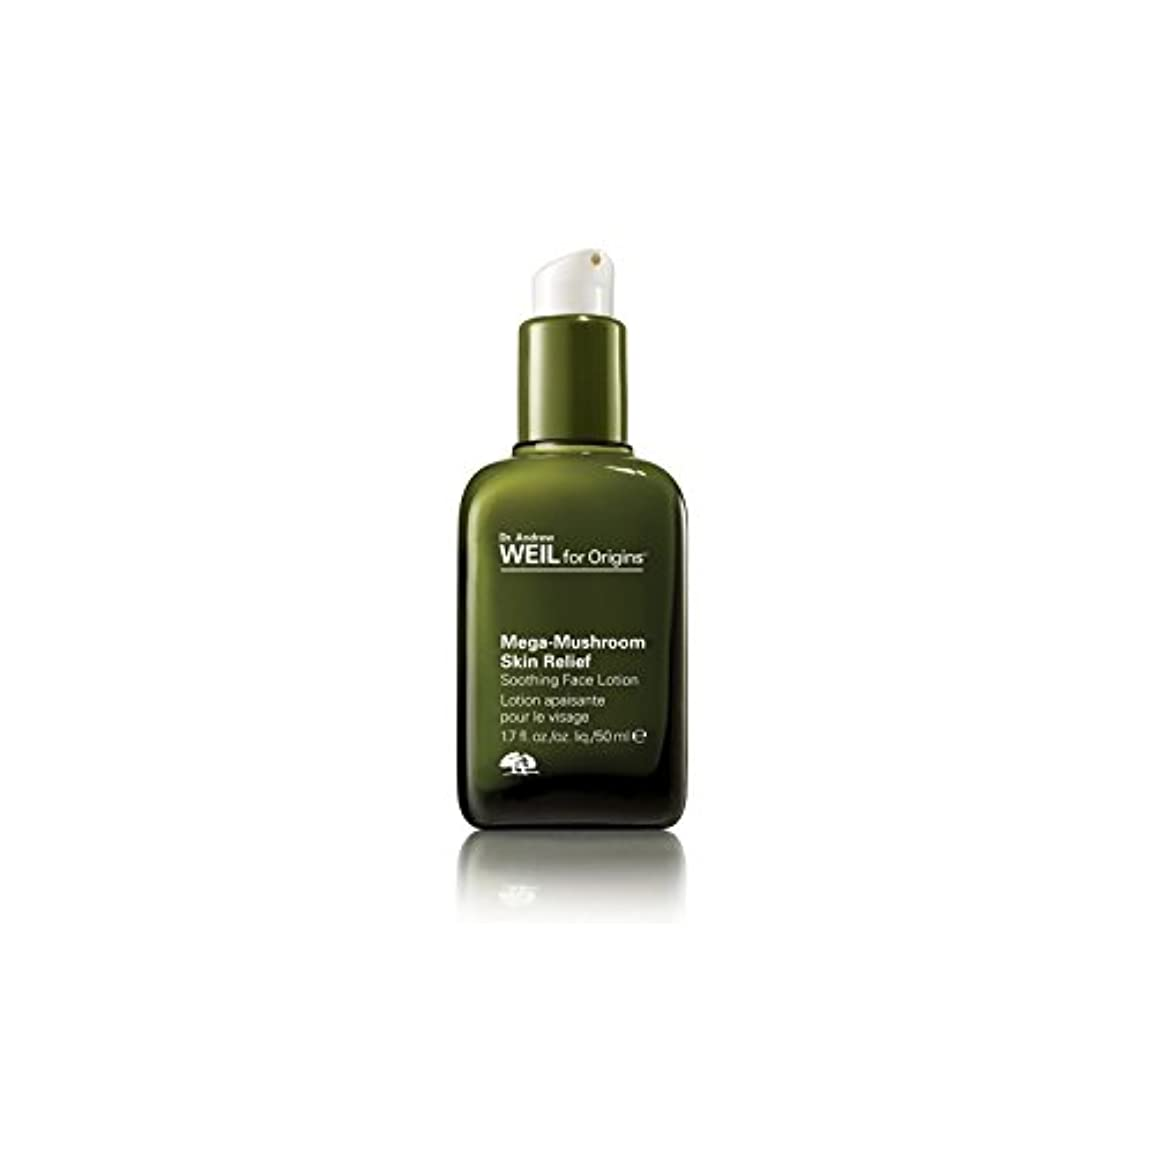 丘シンポジウム聴くOrigins Dr. Andrew Weil For Origins Mega-Mushroom Skin Relief Soothing Face Lotion 50ml (Pack of 6) - 起源アンドルー?ワイル...